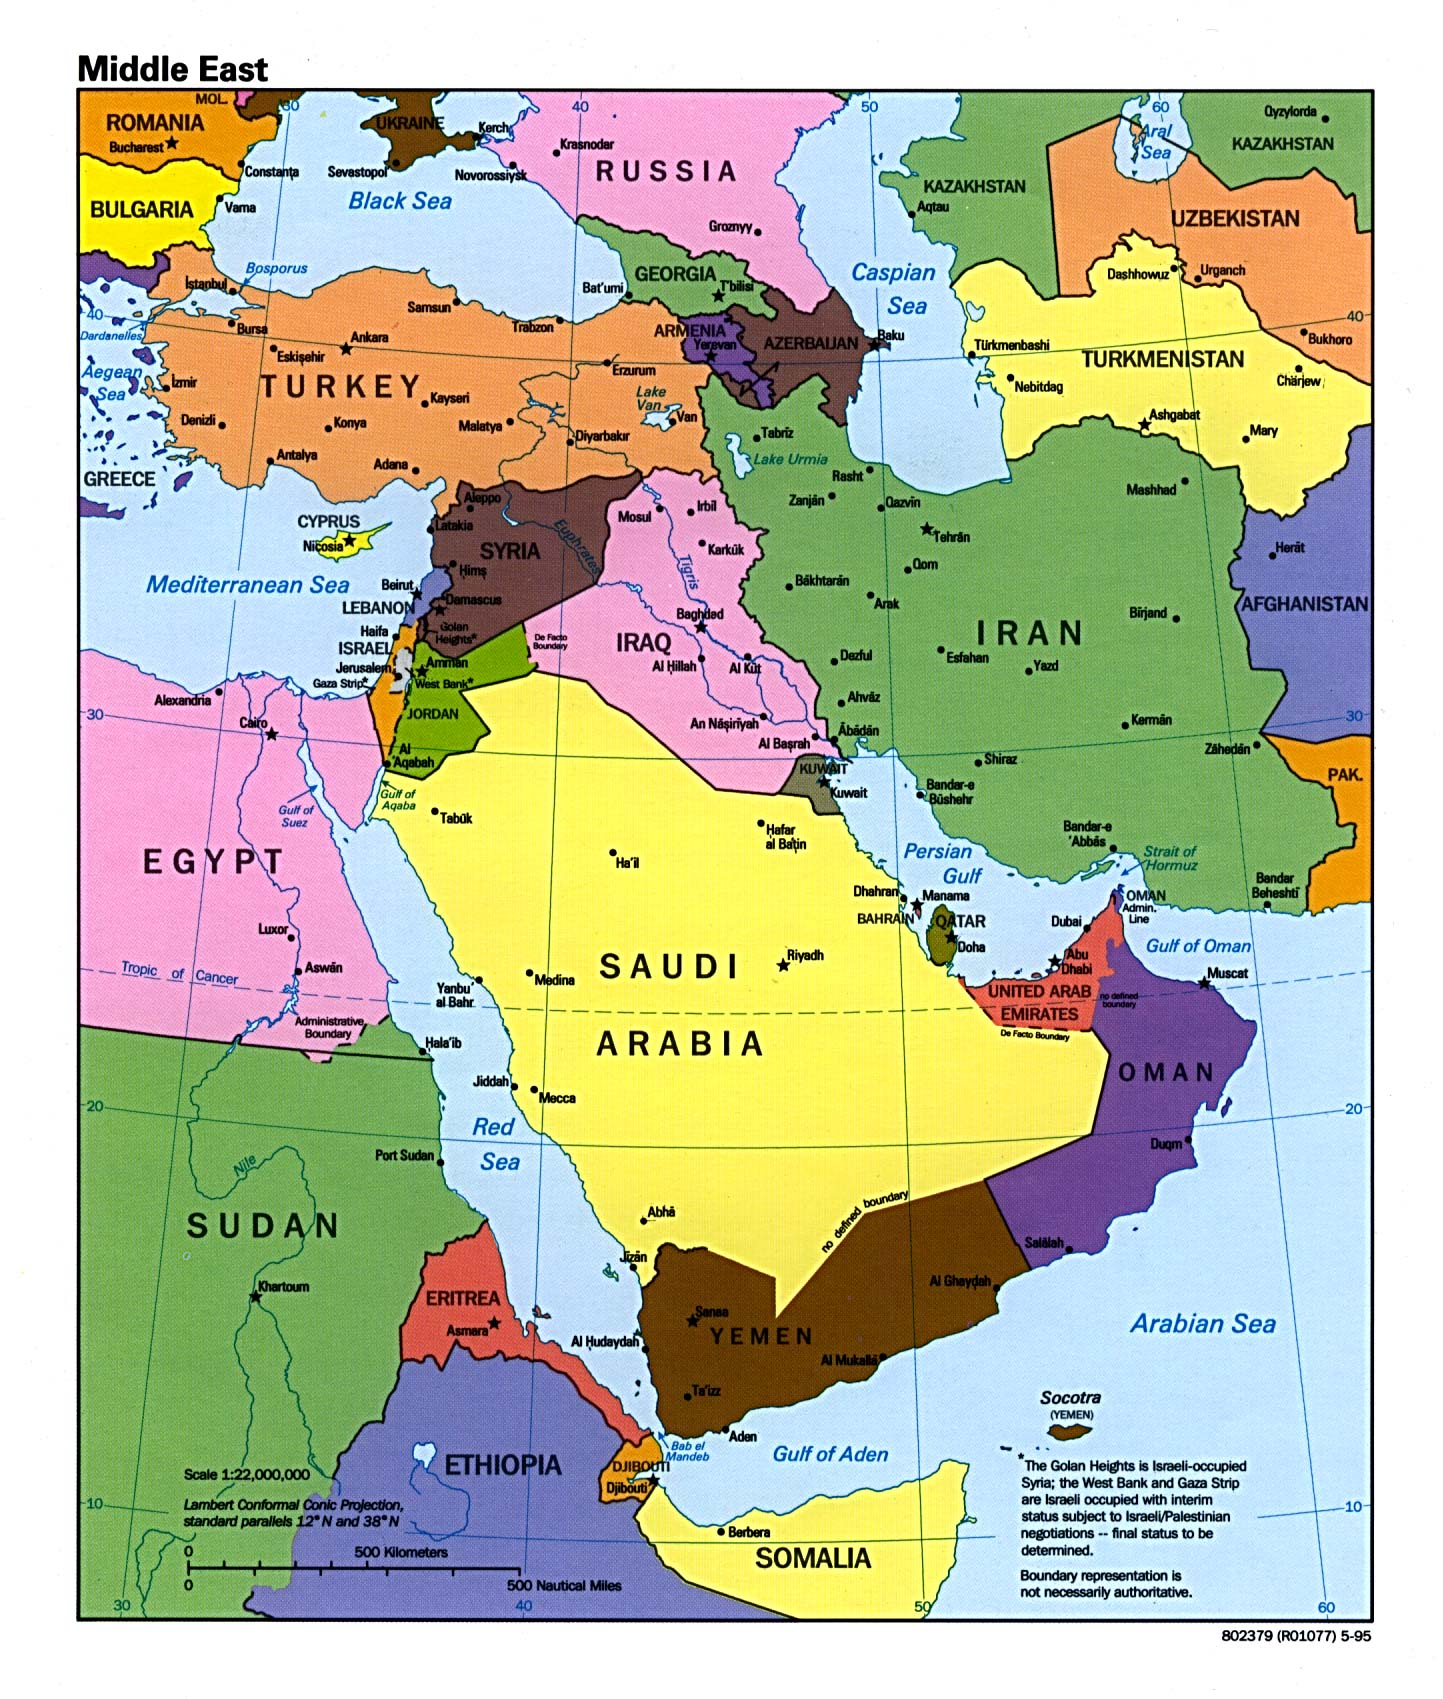 Gacekblog: Middle East Quiz